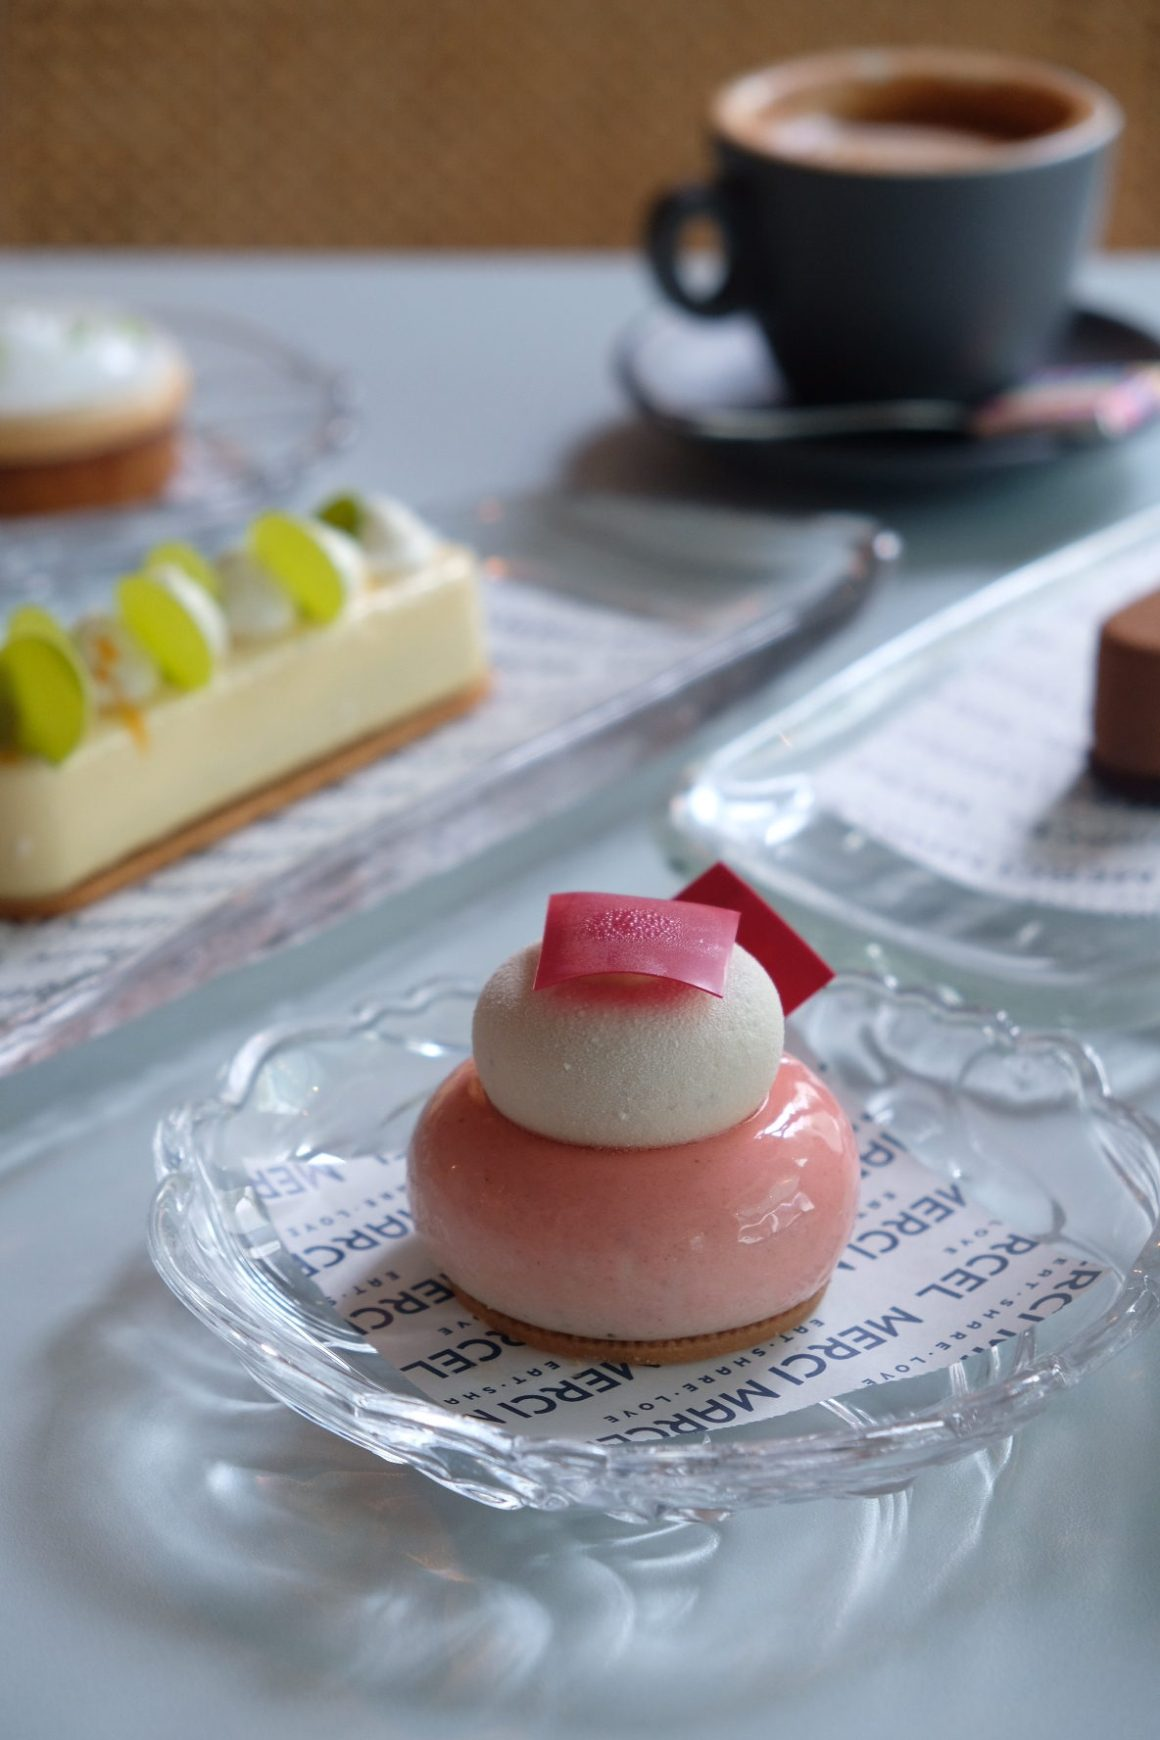 Merci Marcel x A Summer In Paris Offers 4 French Patisserie - Folie Douce ($13)